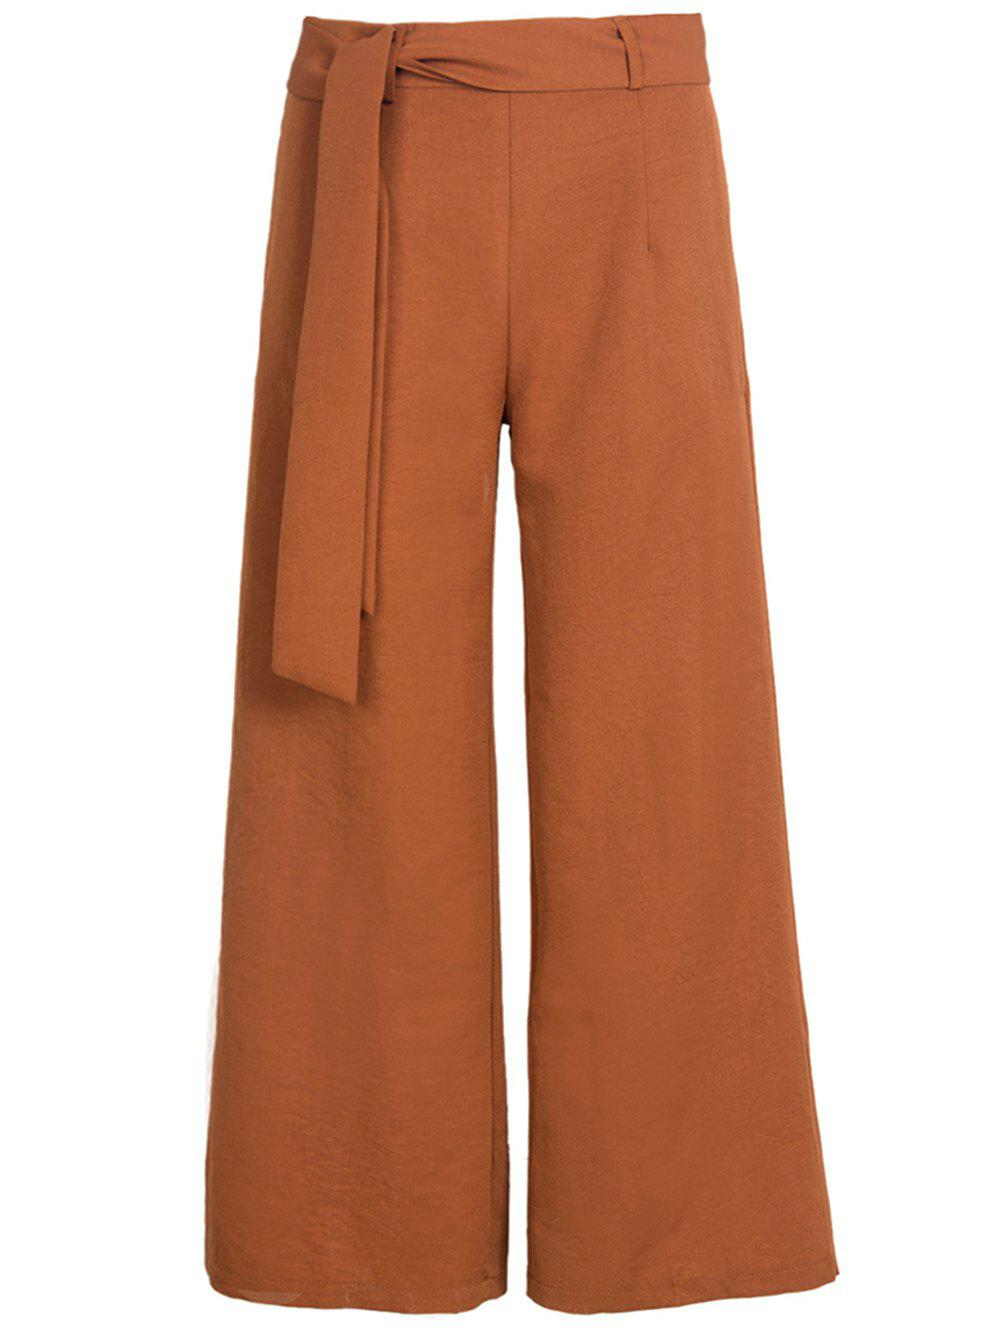 Affordable Womens Belted High Waist Casual Loose Long Pants with Pocket